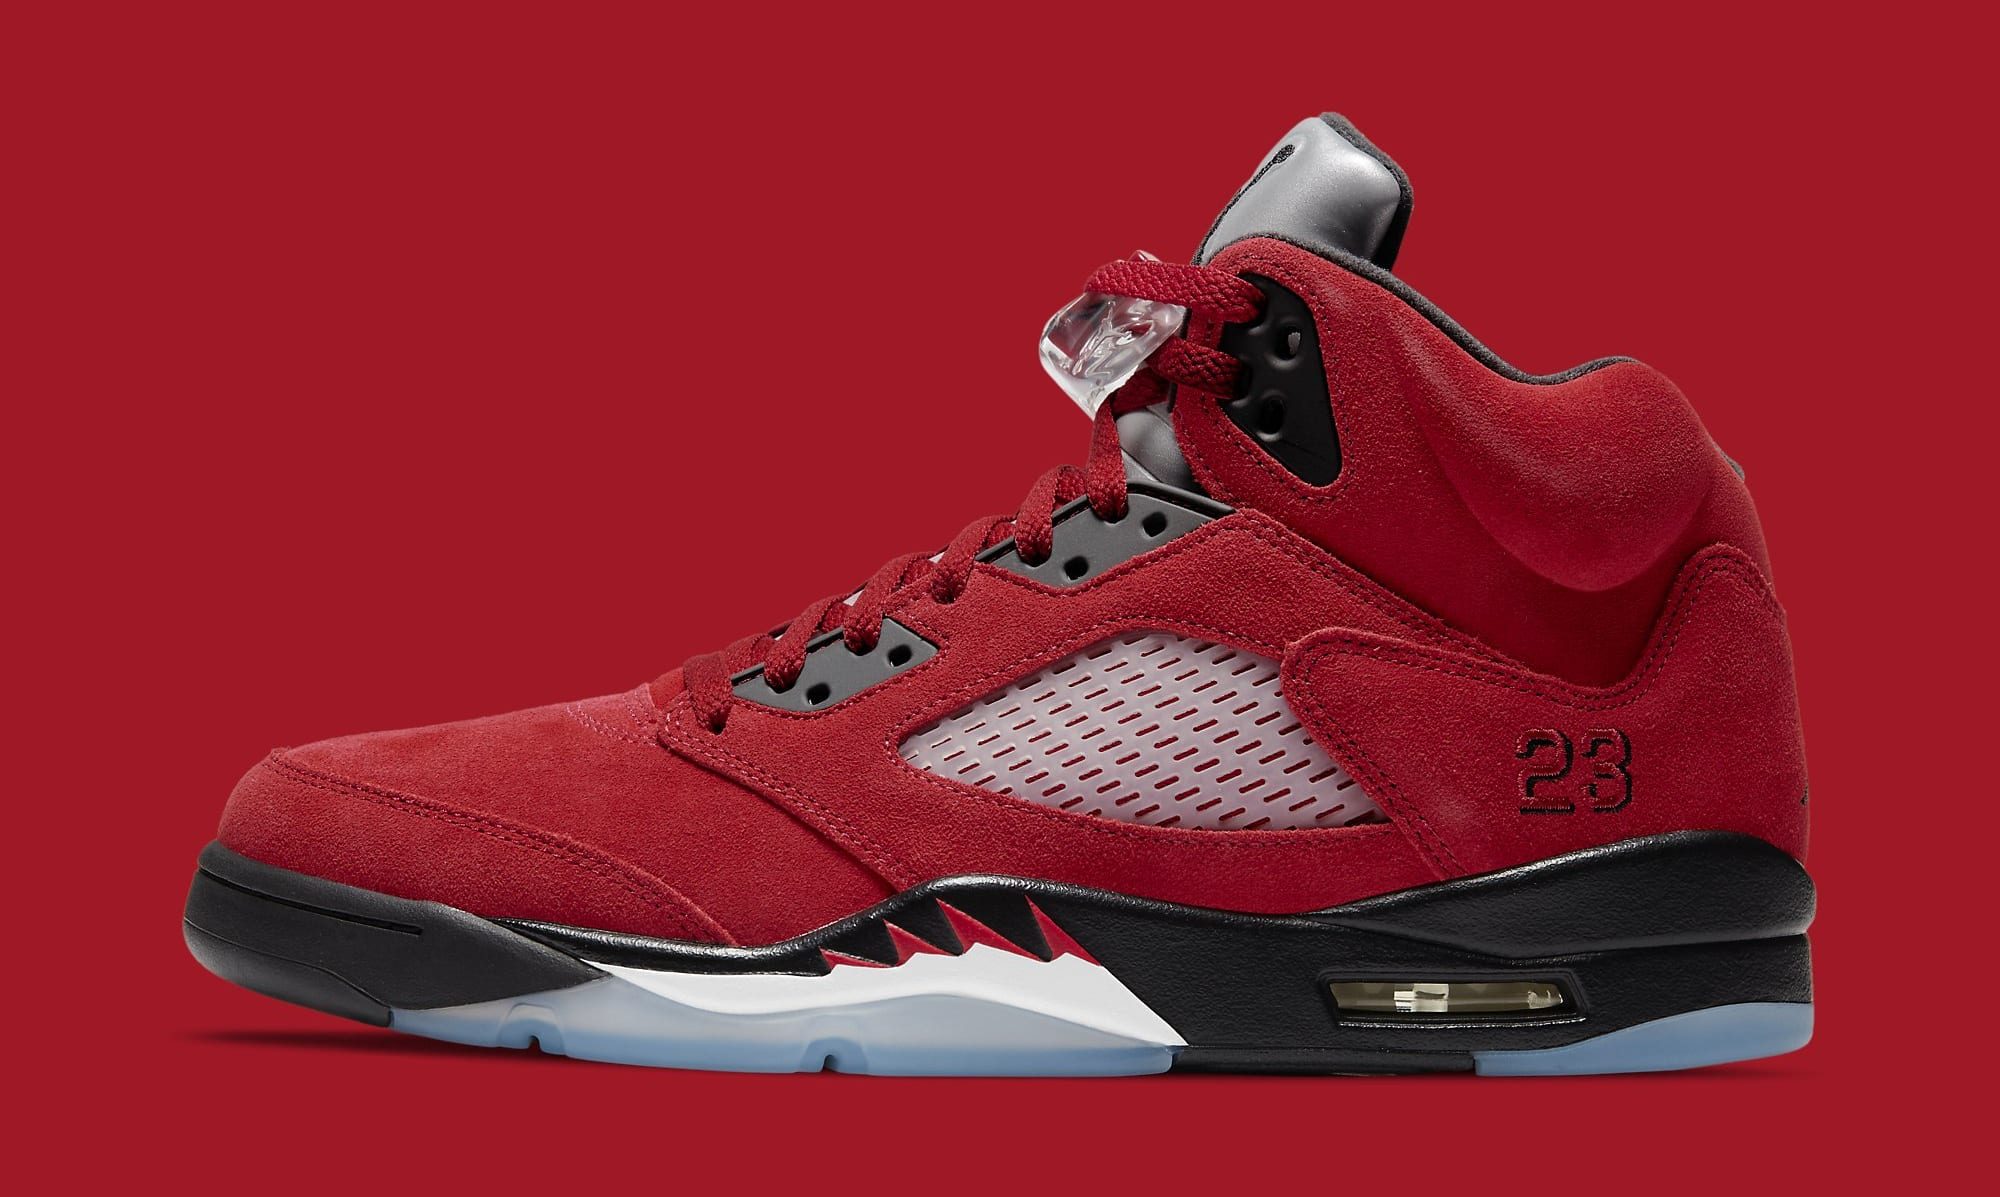 Air Jordan 5 Retro 'Raging Bull' 2021 DD0587-600 Lateral